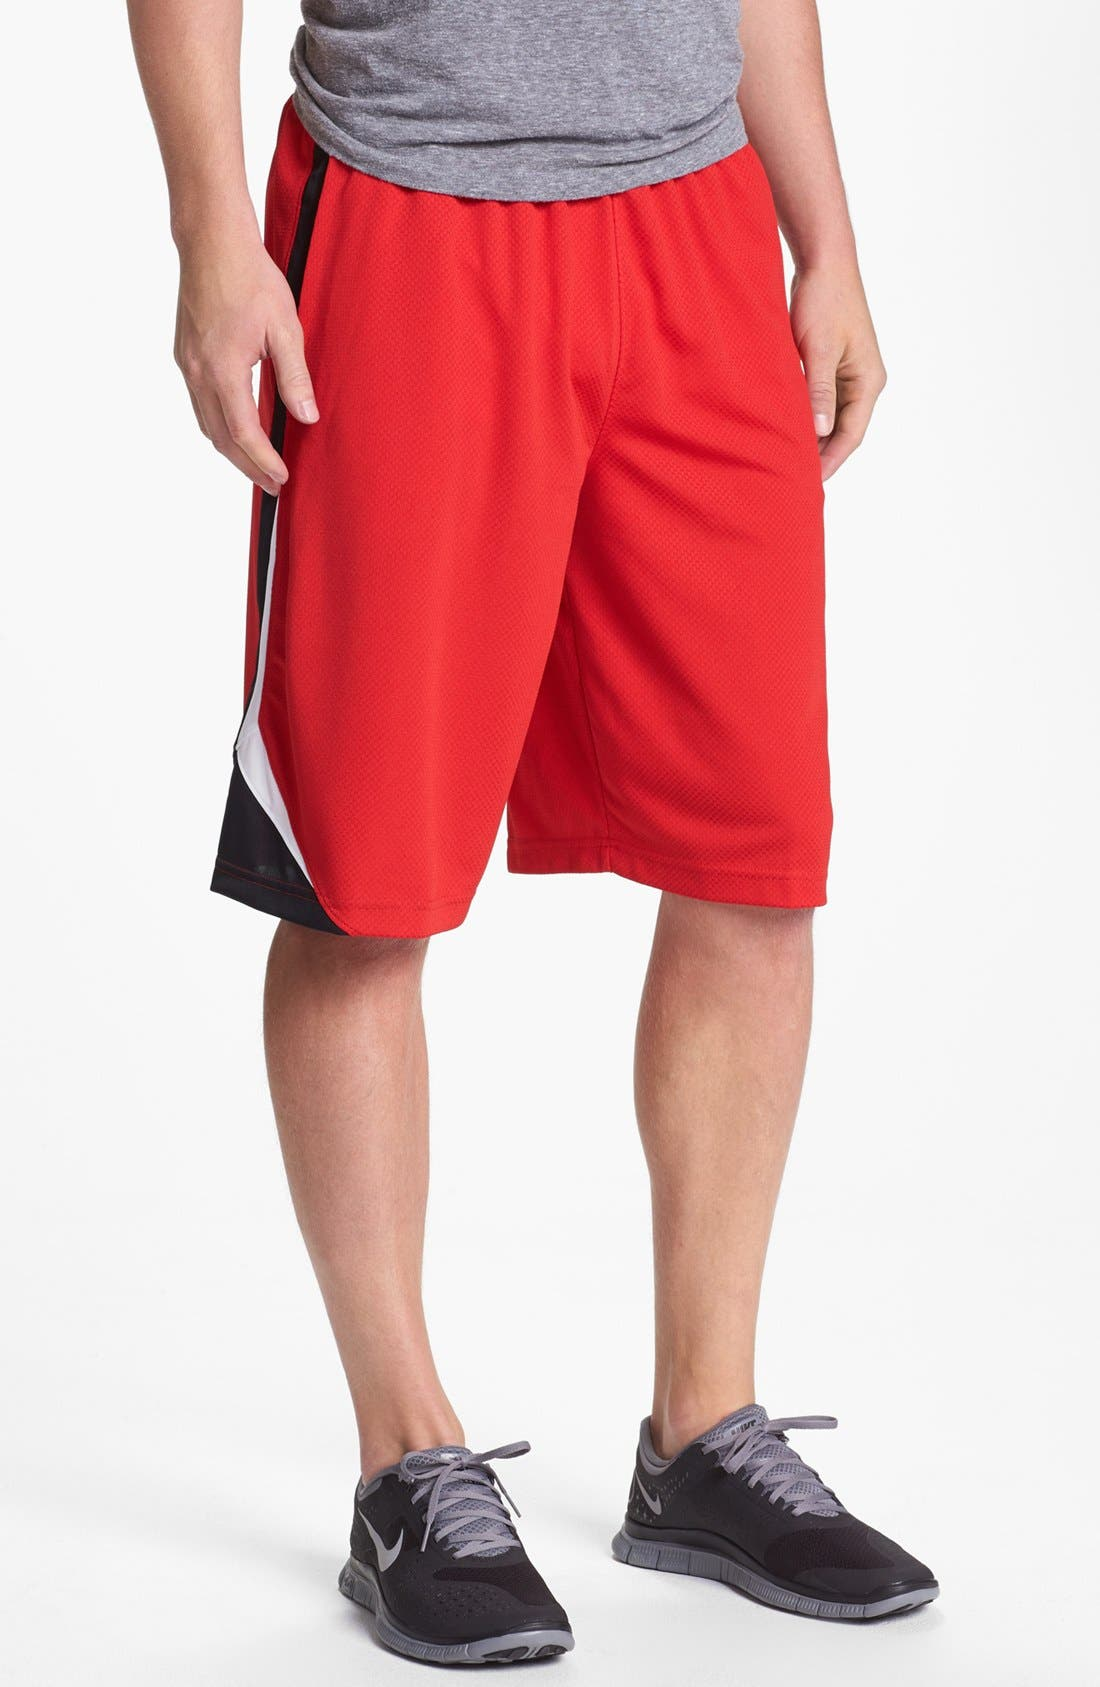 Alternate Image 1 Selected - Nike 'Condition' Shorts